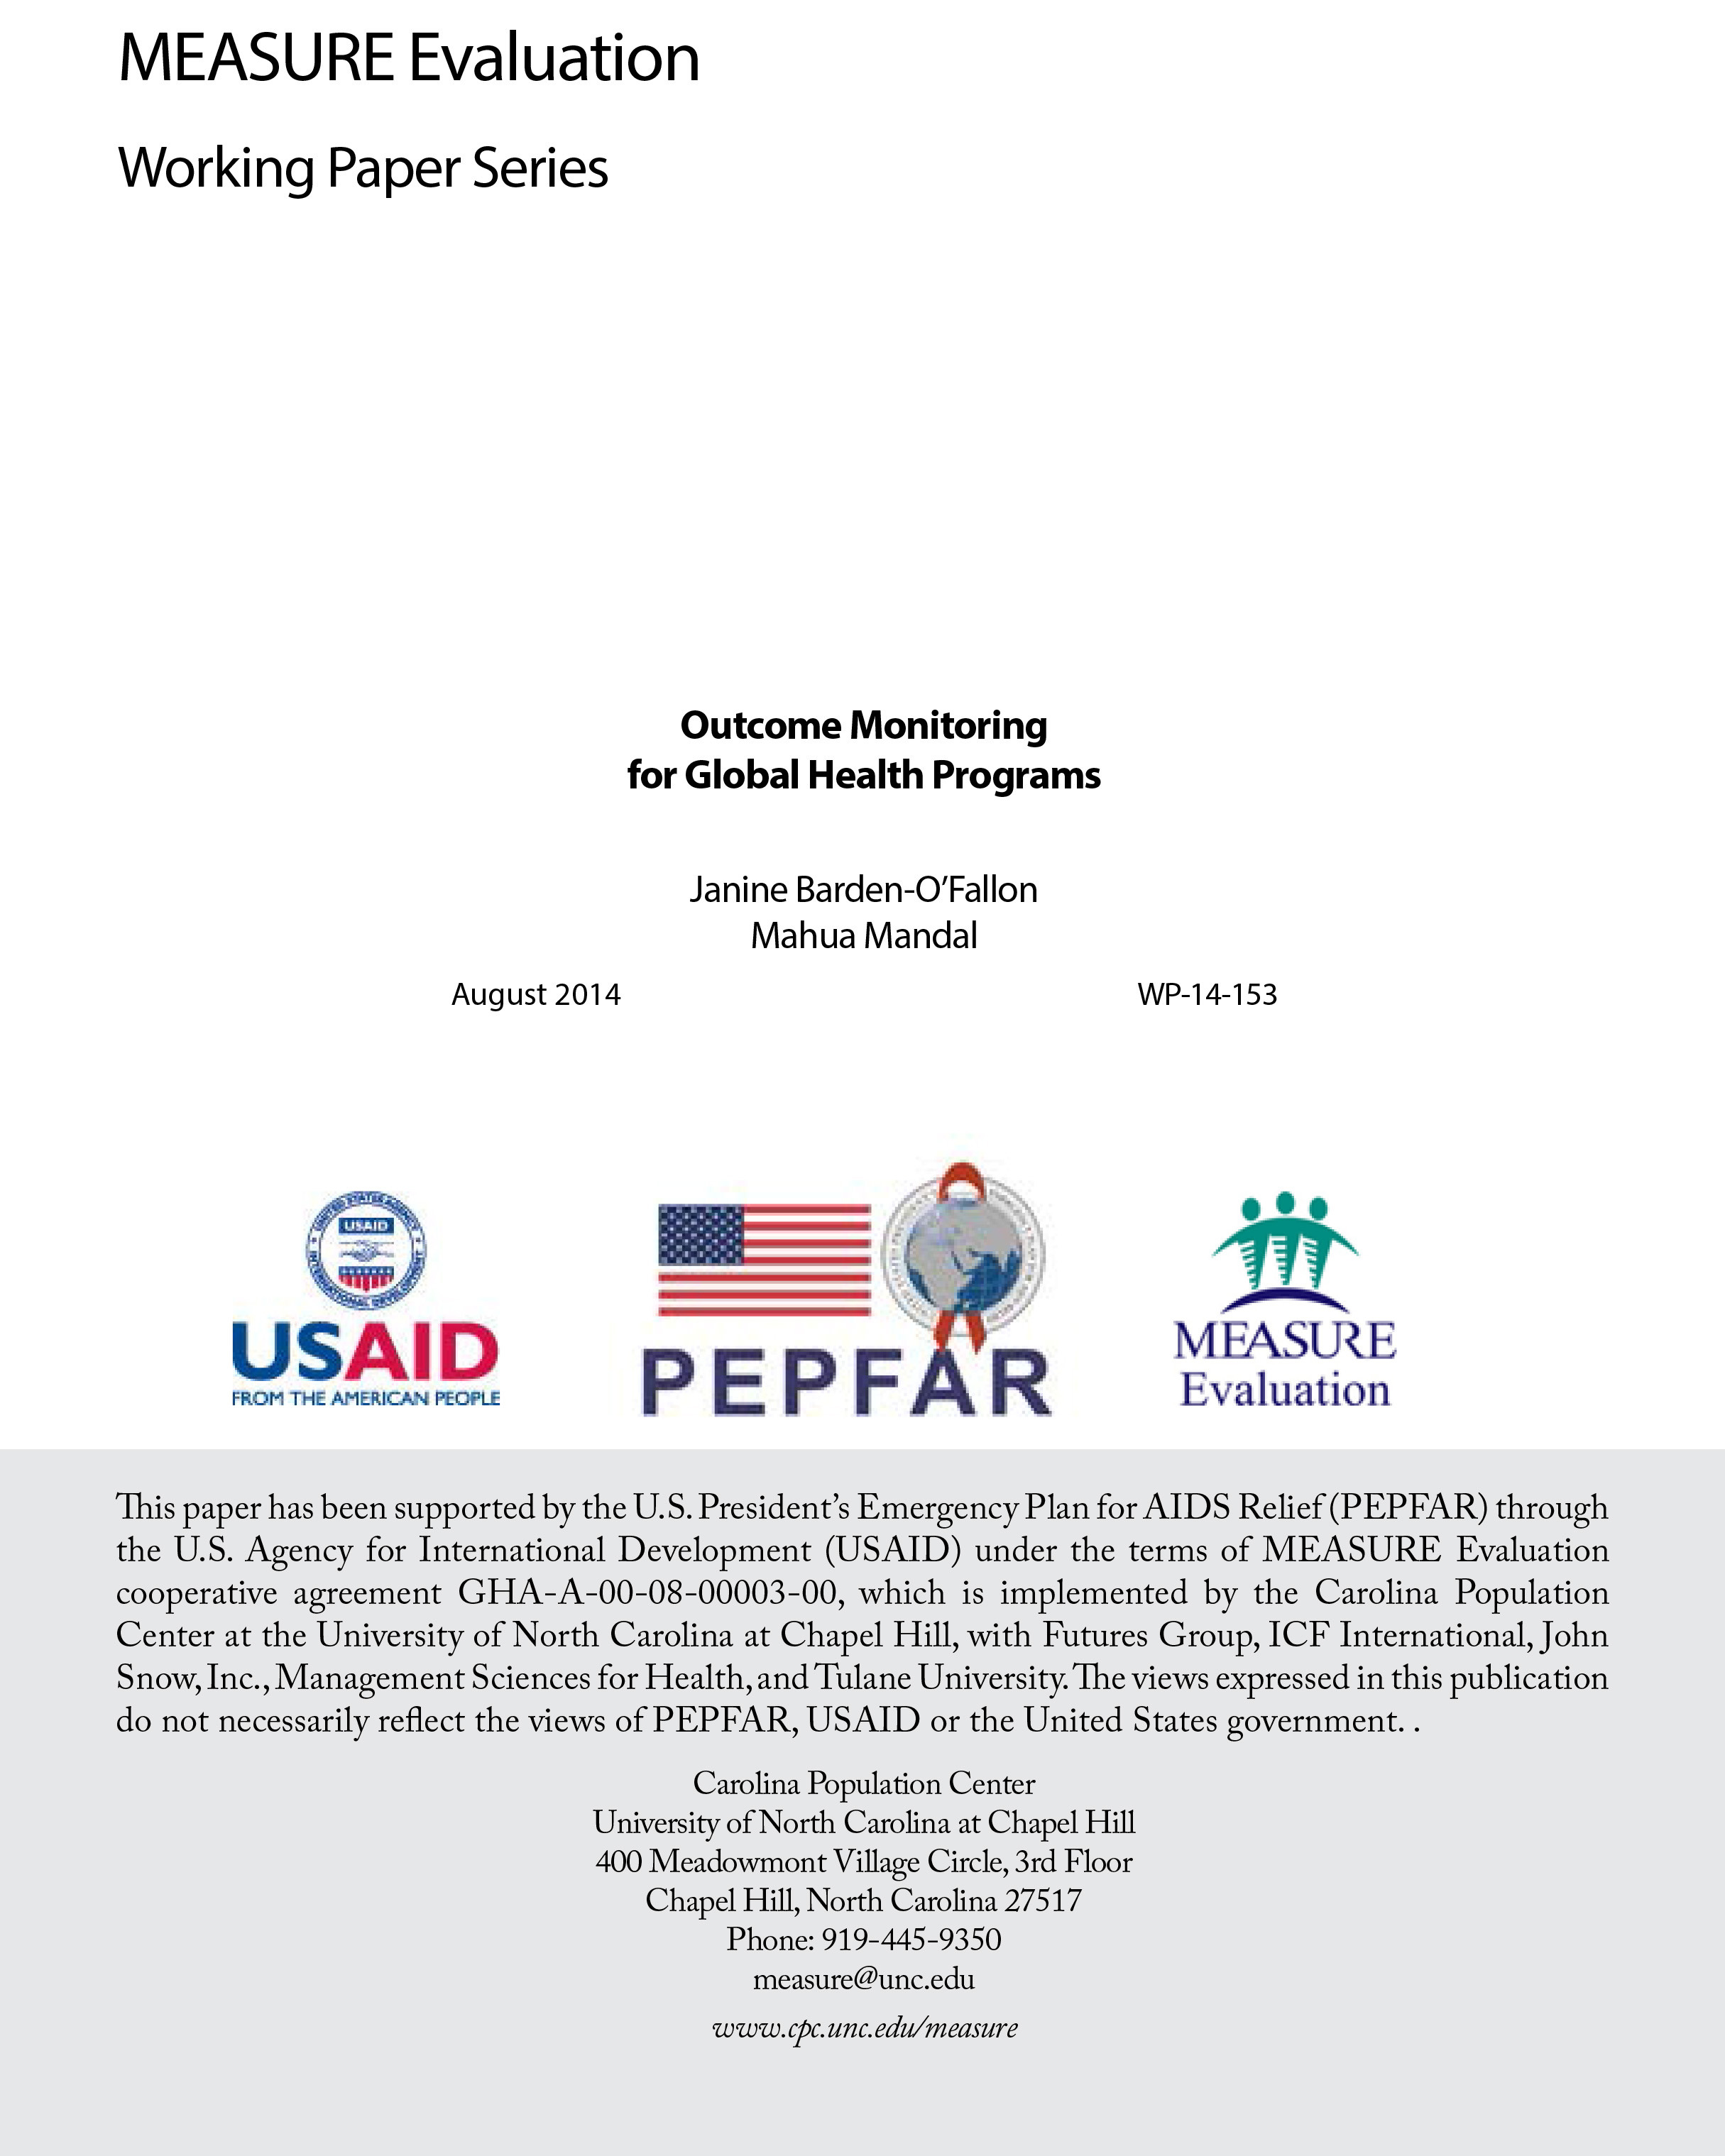 Outcome Monitoring for Global Health Programs